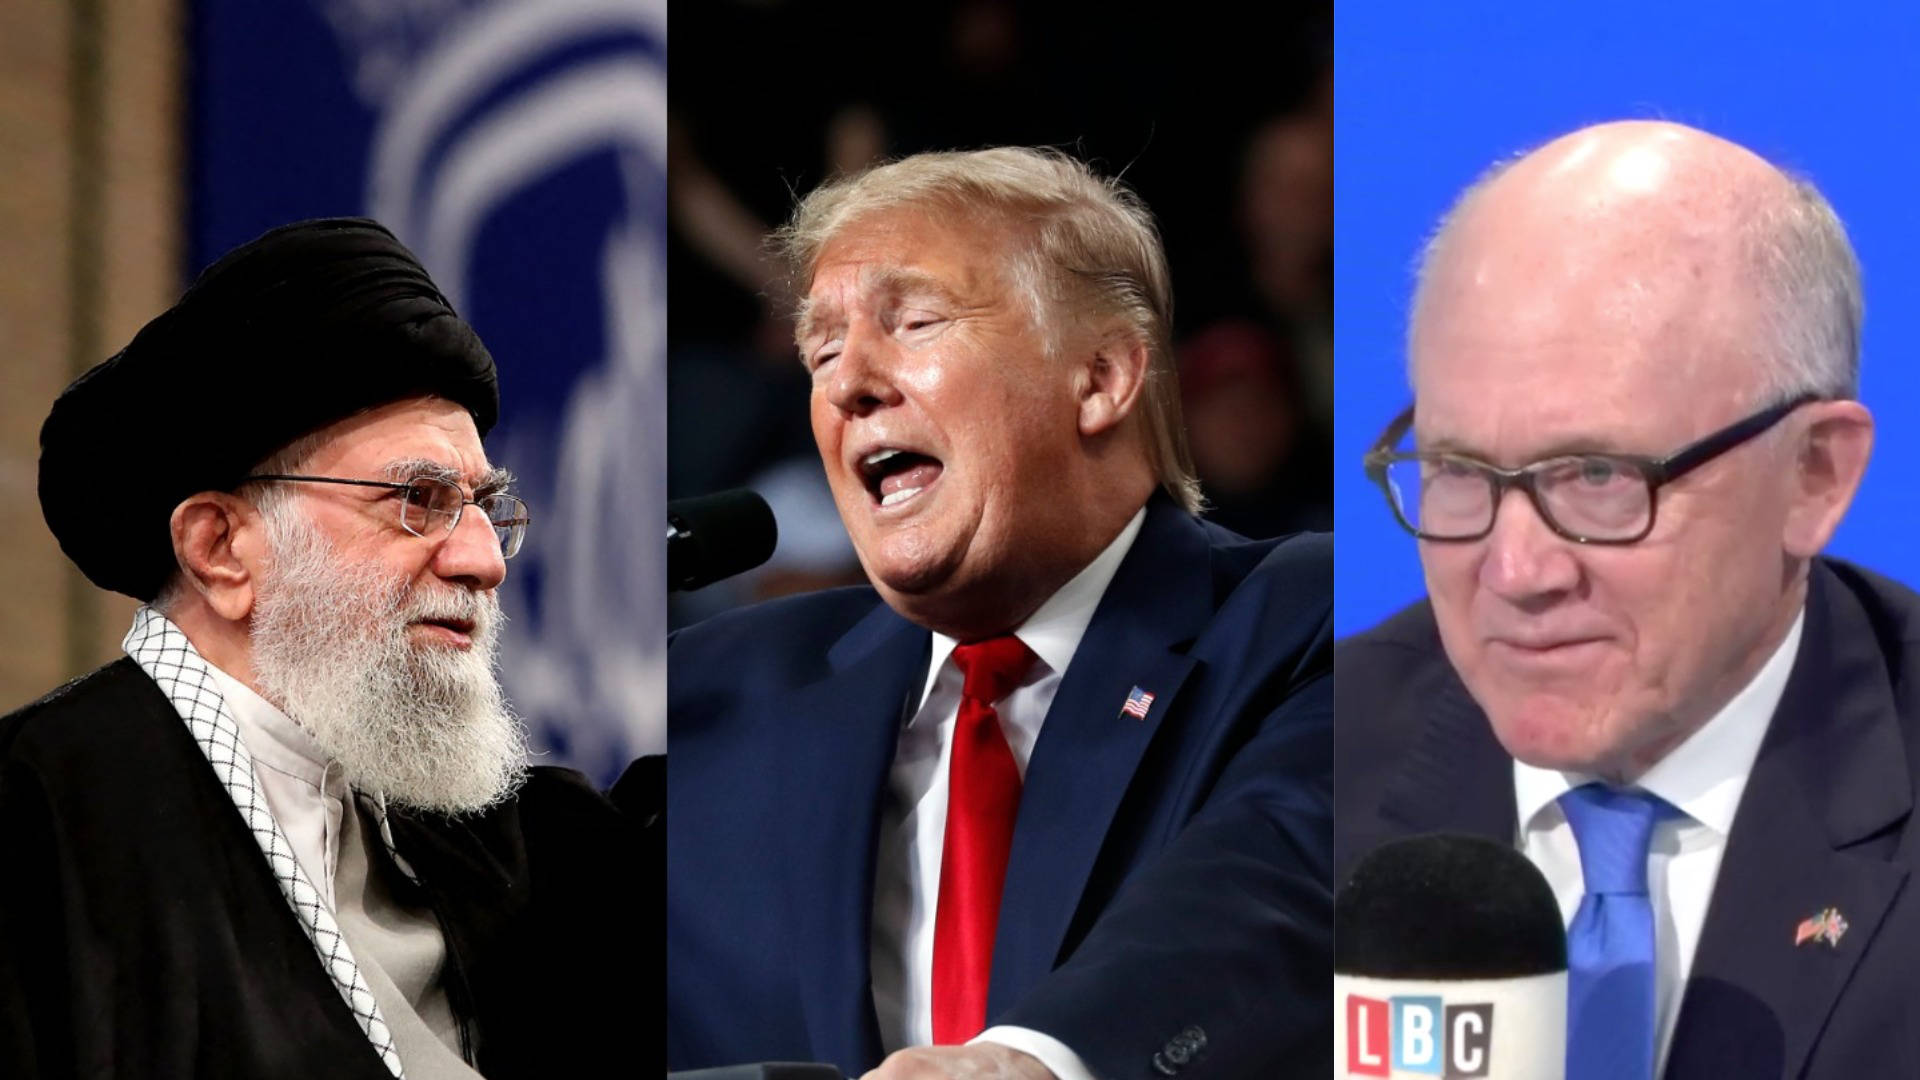 US Ambassador Woody Johnson tells LBC Iran should 'pick up phone' for US peace talks